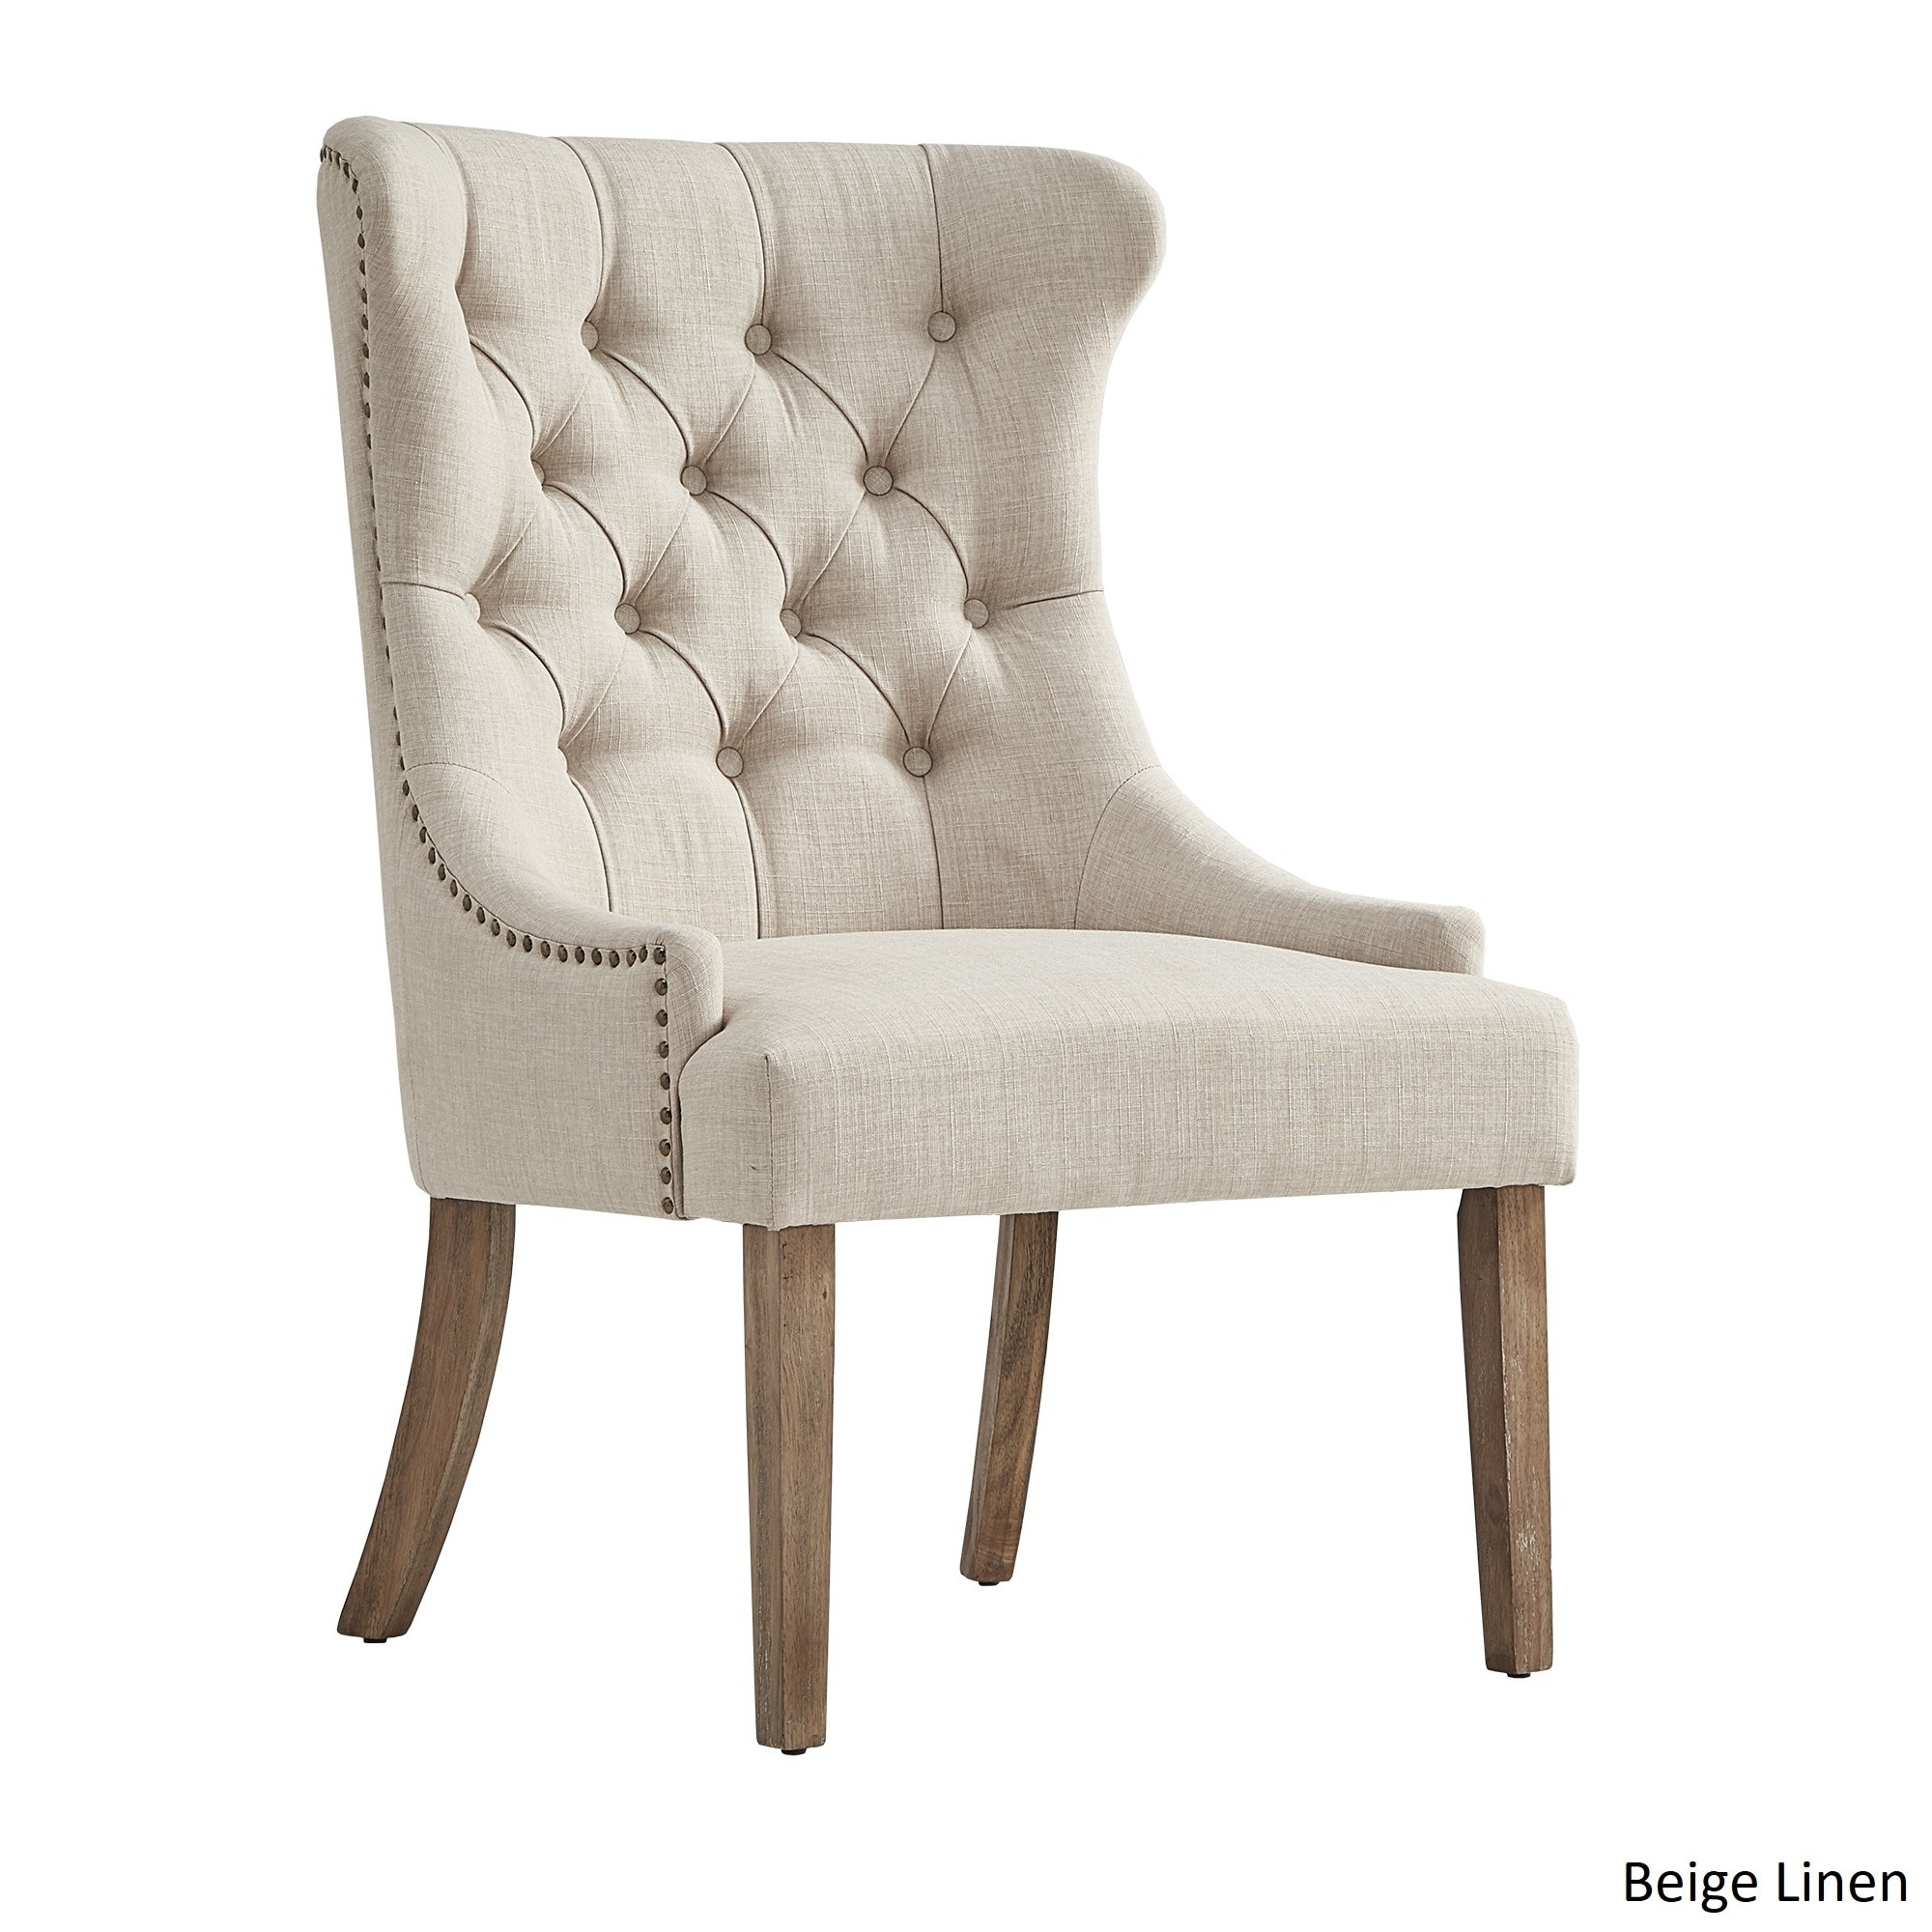 Wingback Tufted Chair Inspire Q Kimpton Upholstered Button Tufted Wingback Chair By Artisan